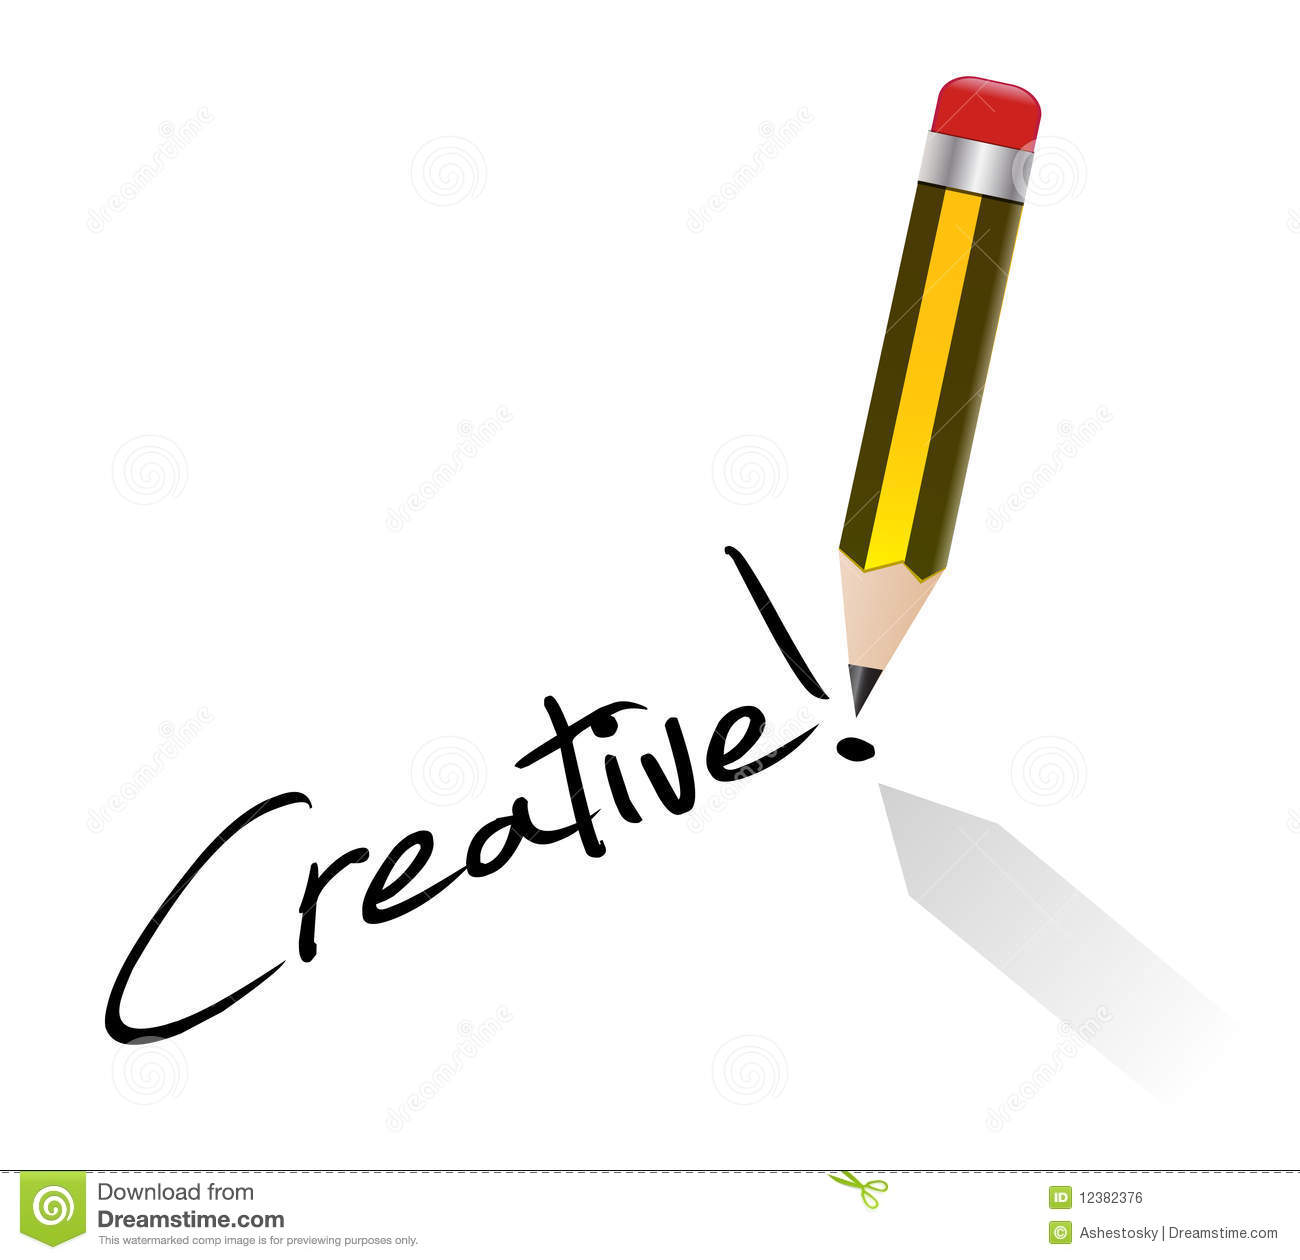 Creative concept signature royalty free stock image Images of calligraphy